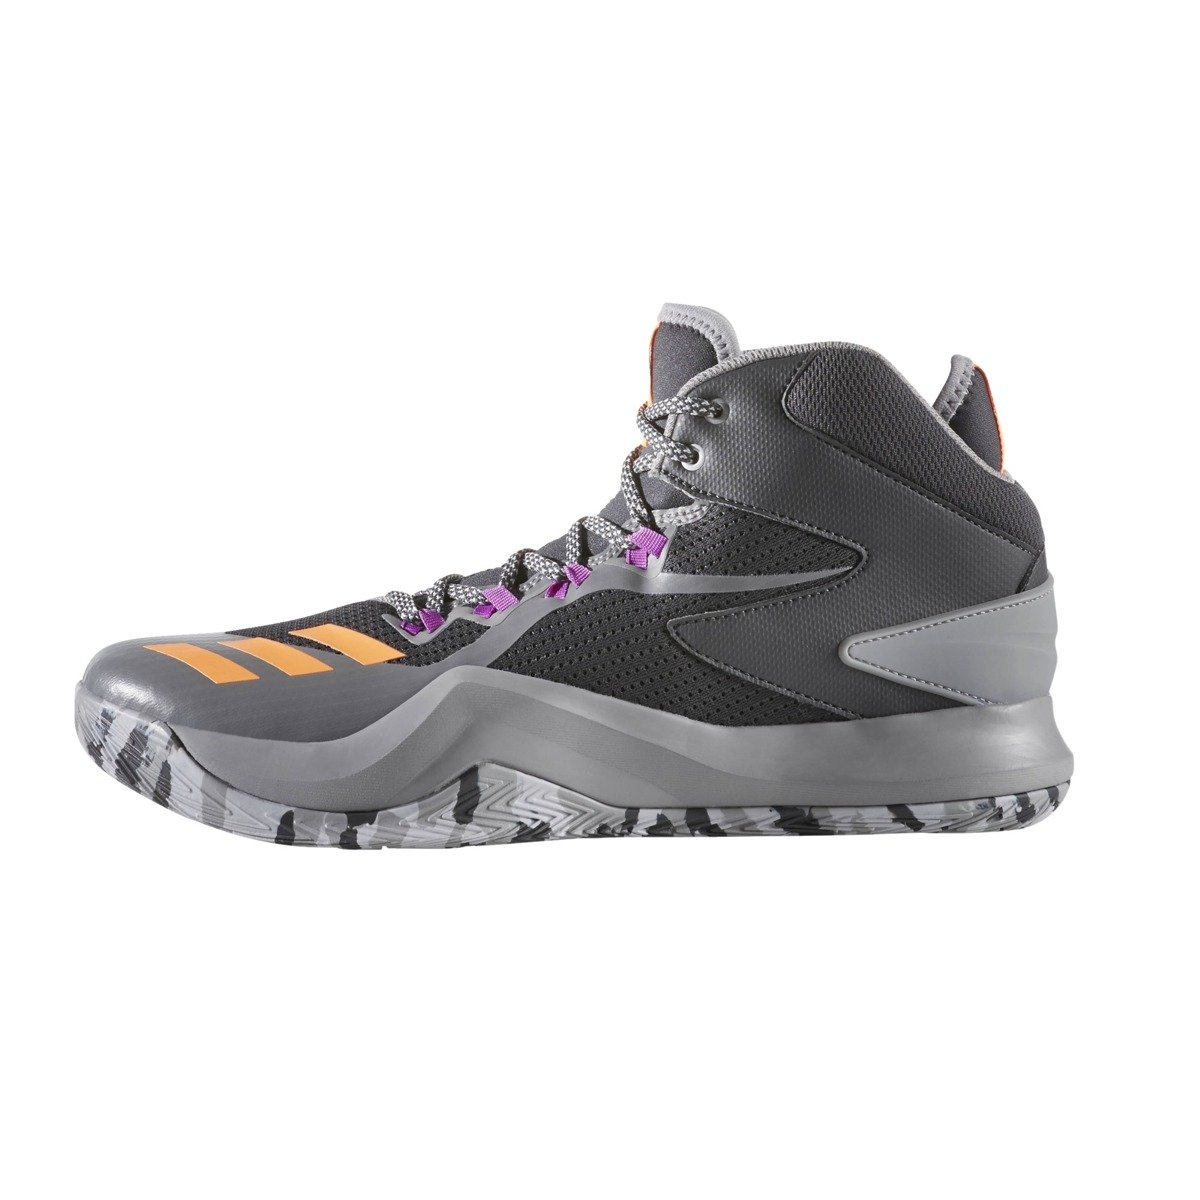 buy online 9e700 9685a ... Adidas D Rose Dominate 4 Shoes - BB8180 ...